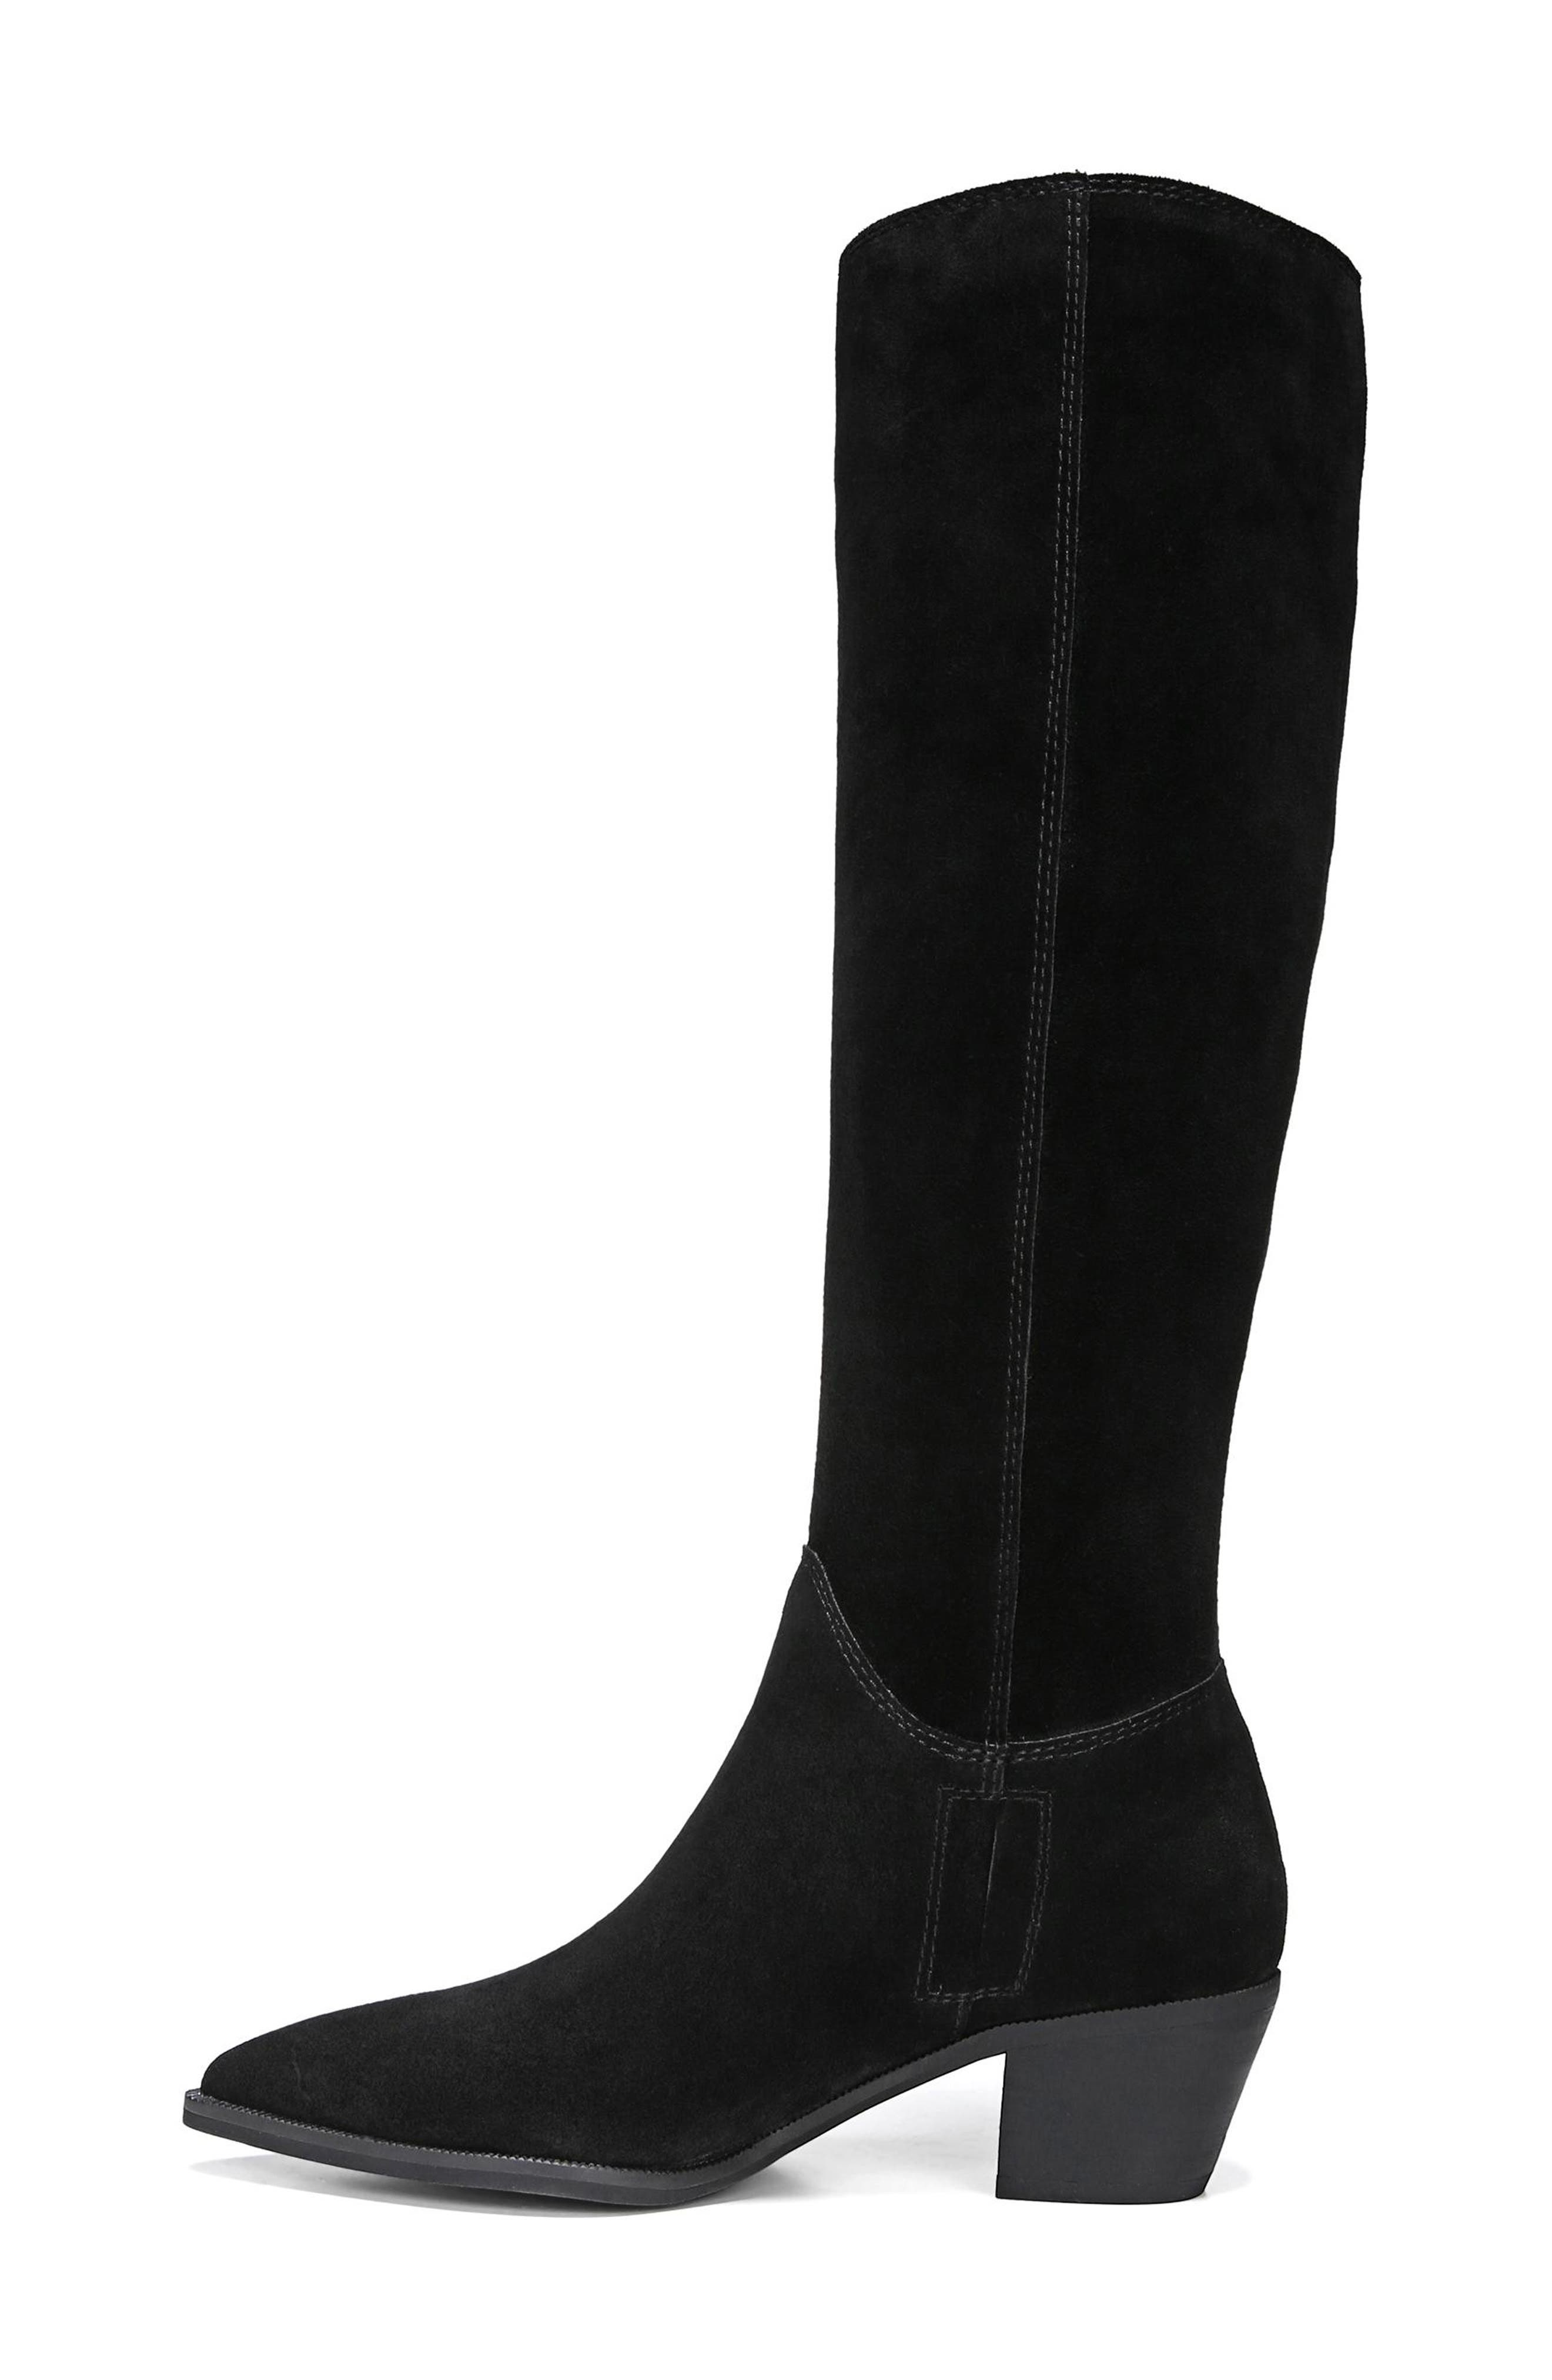 Rowena Knee High Boot,                             Alternate thumbnail 8, color,                             BLACK SUEDE